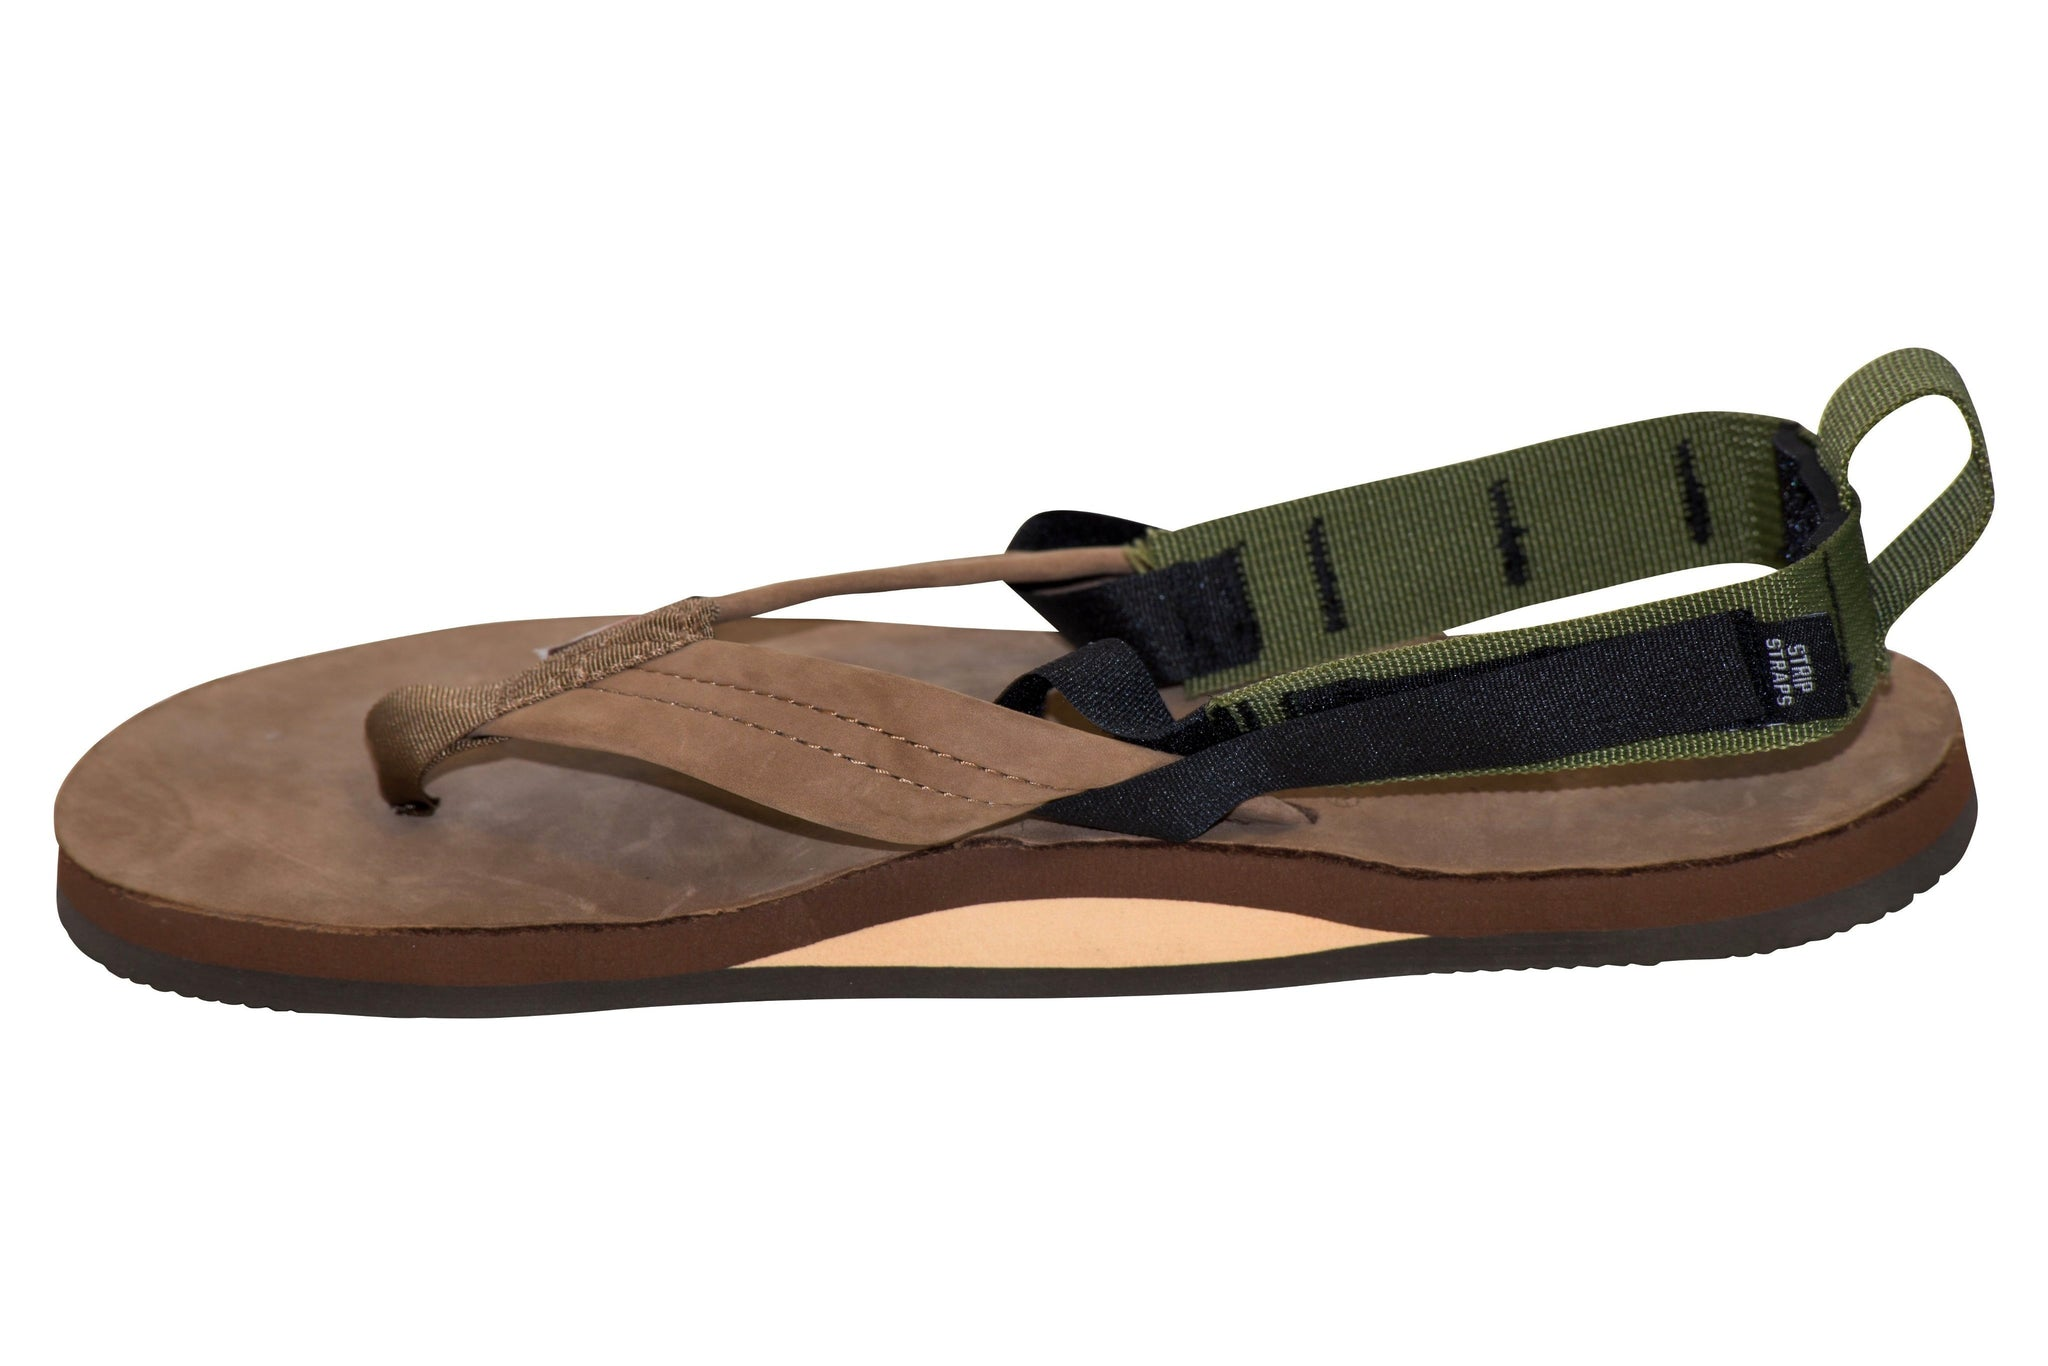 Strip-Straps  Ankle Straps For Flip Flops  Only 1199-7097